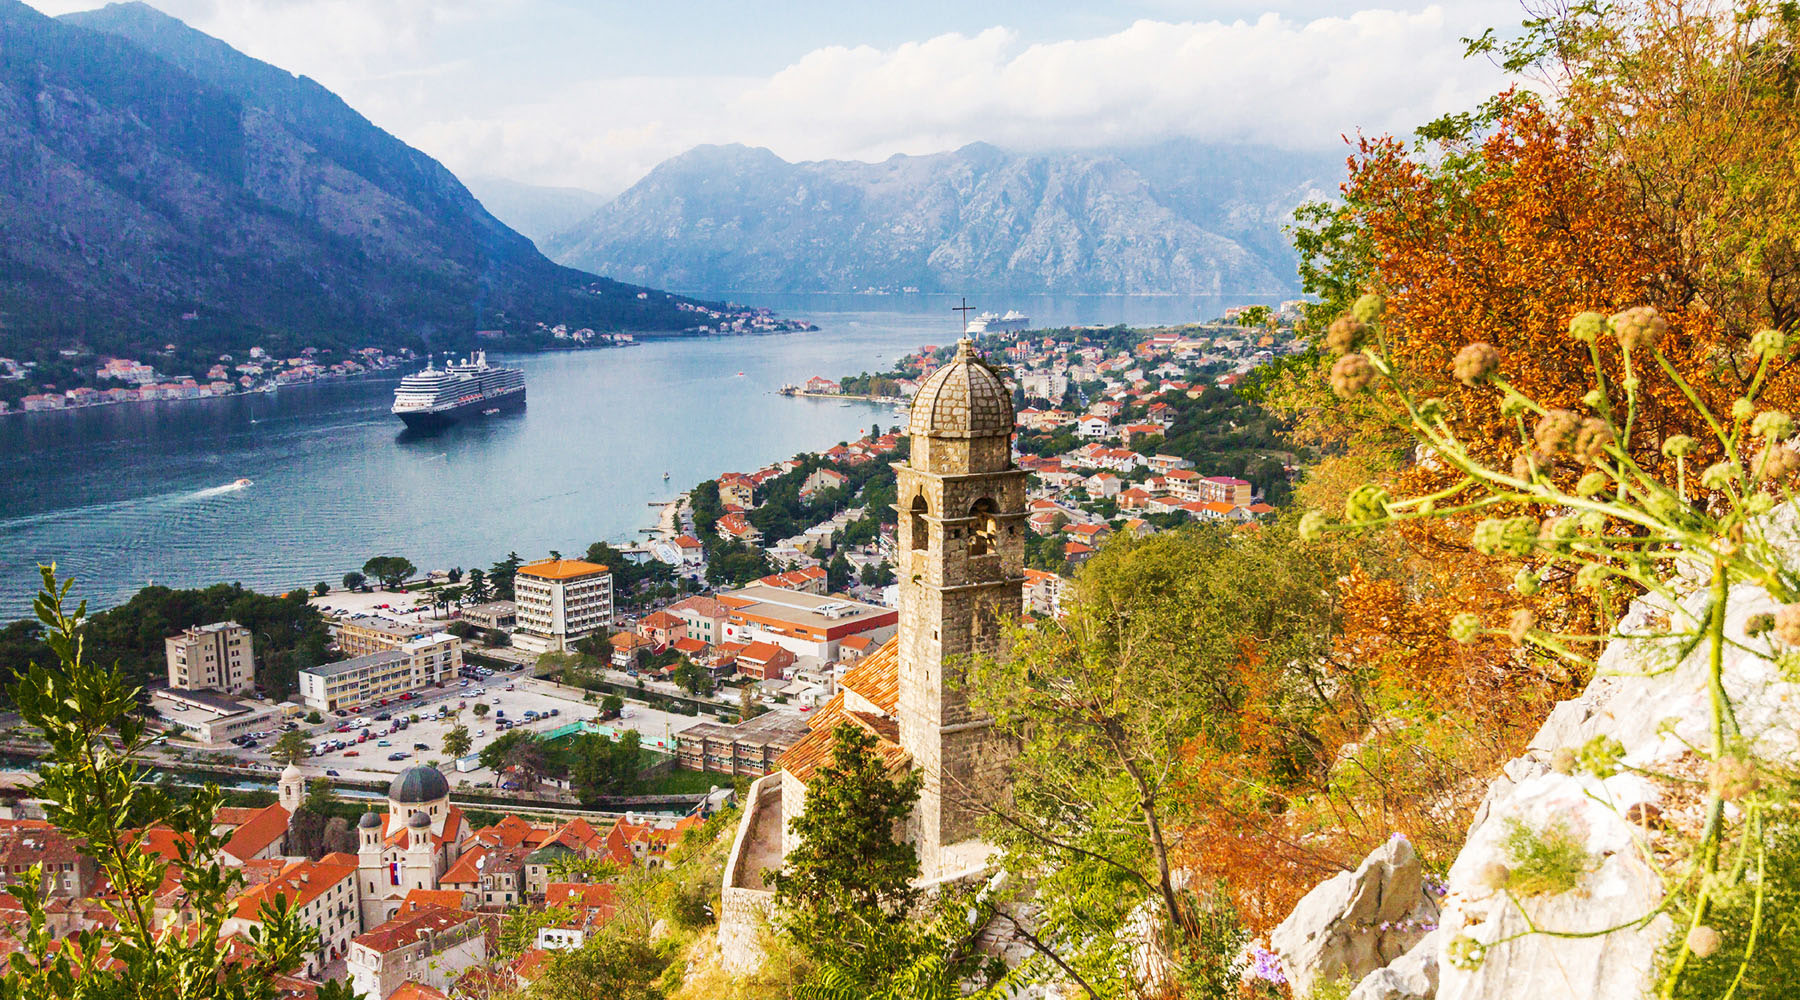 Cruising to Kotor, Montenegro with Azamara.